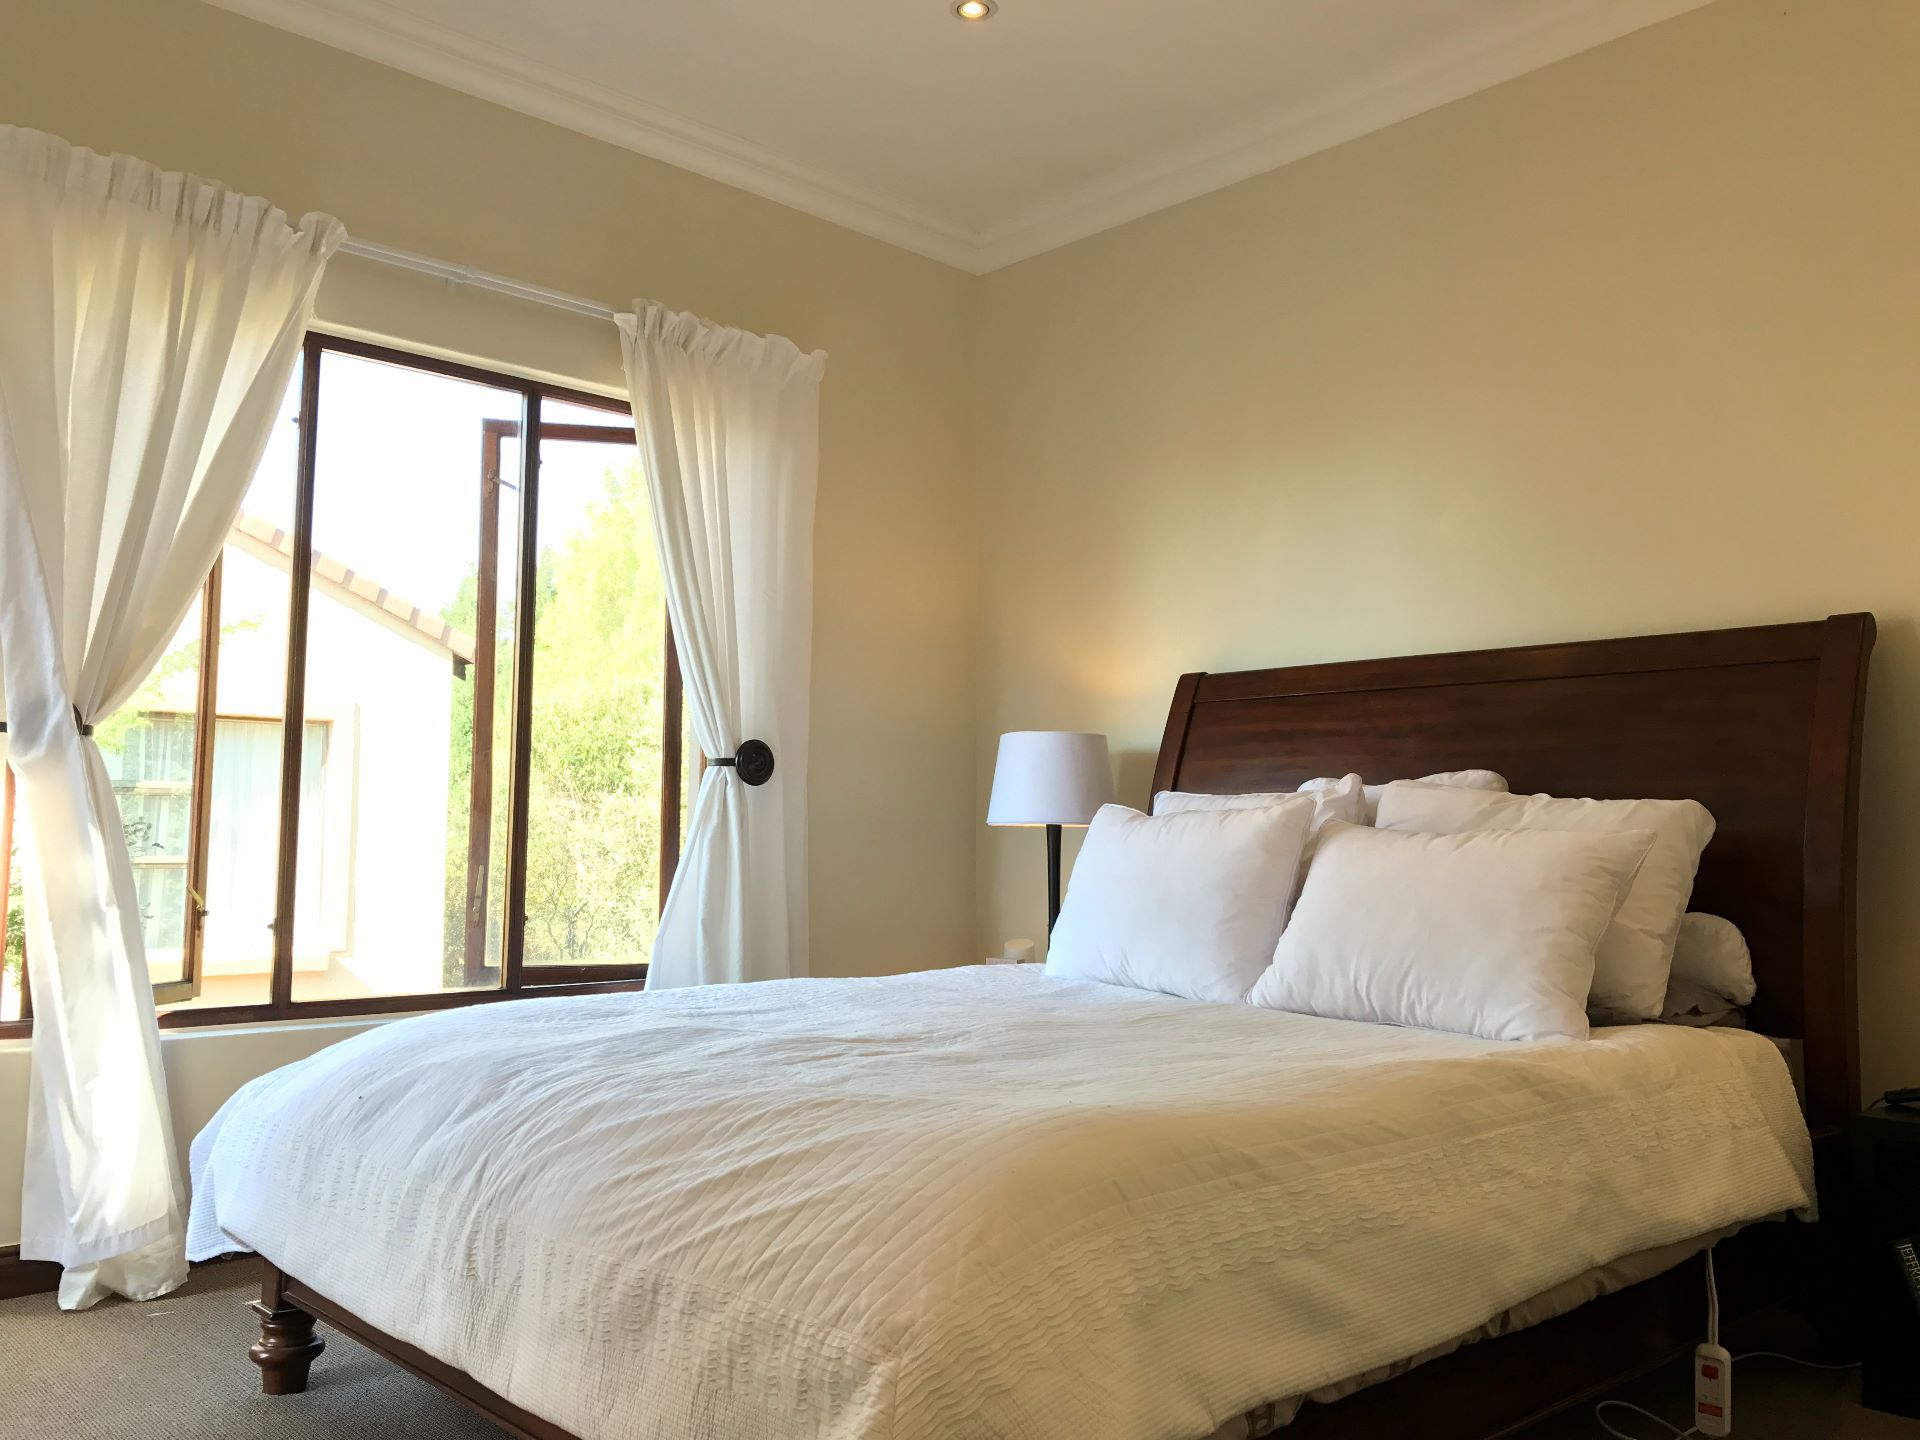 Honeydew Ridge property for sale. Ref No: 13518143. Picture no 18